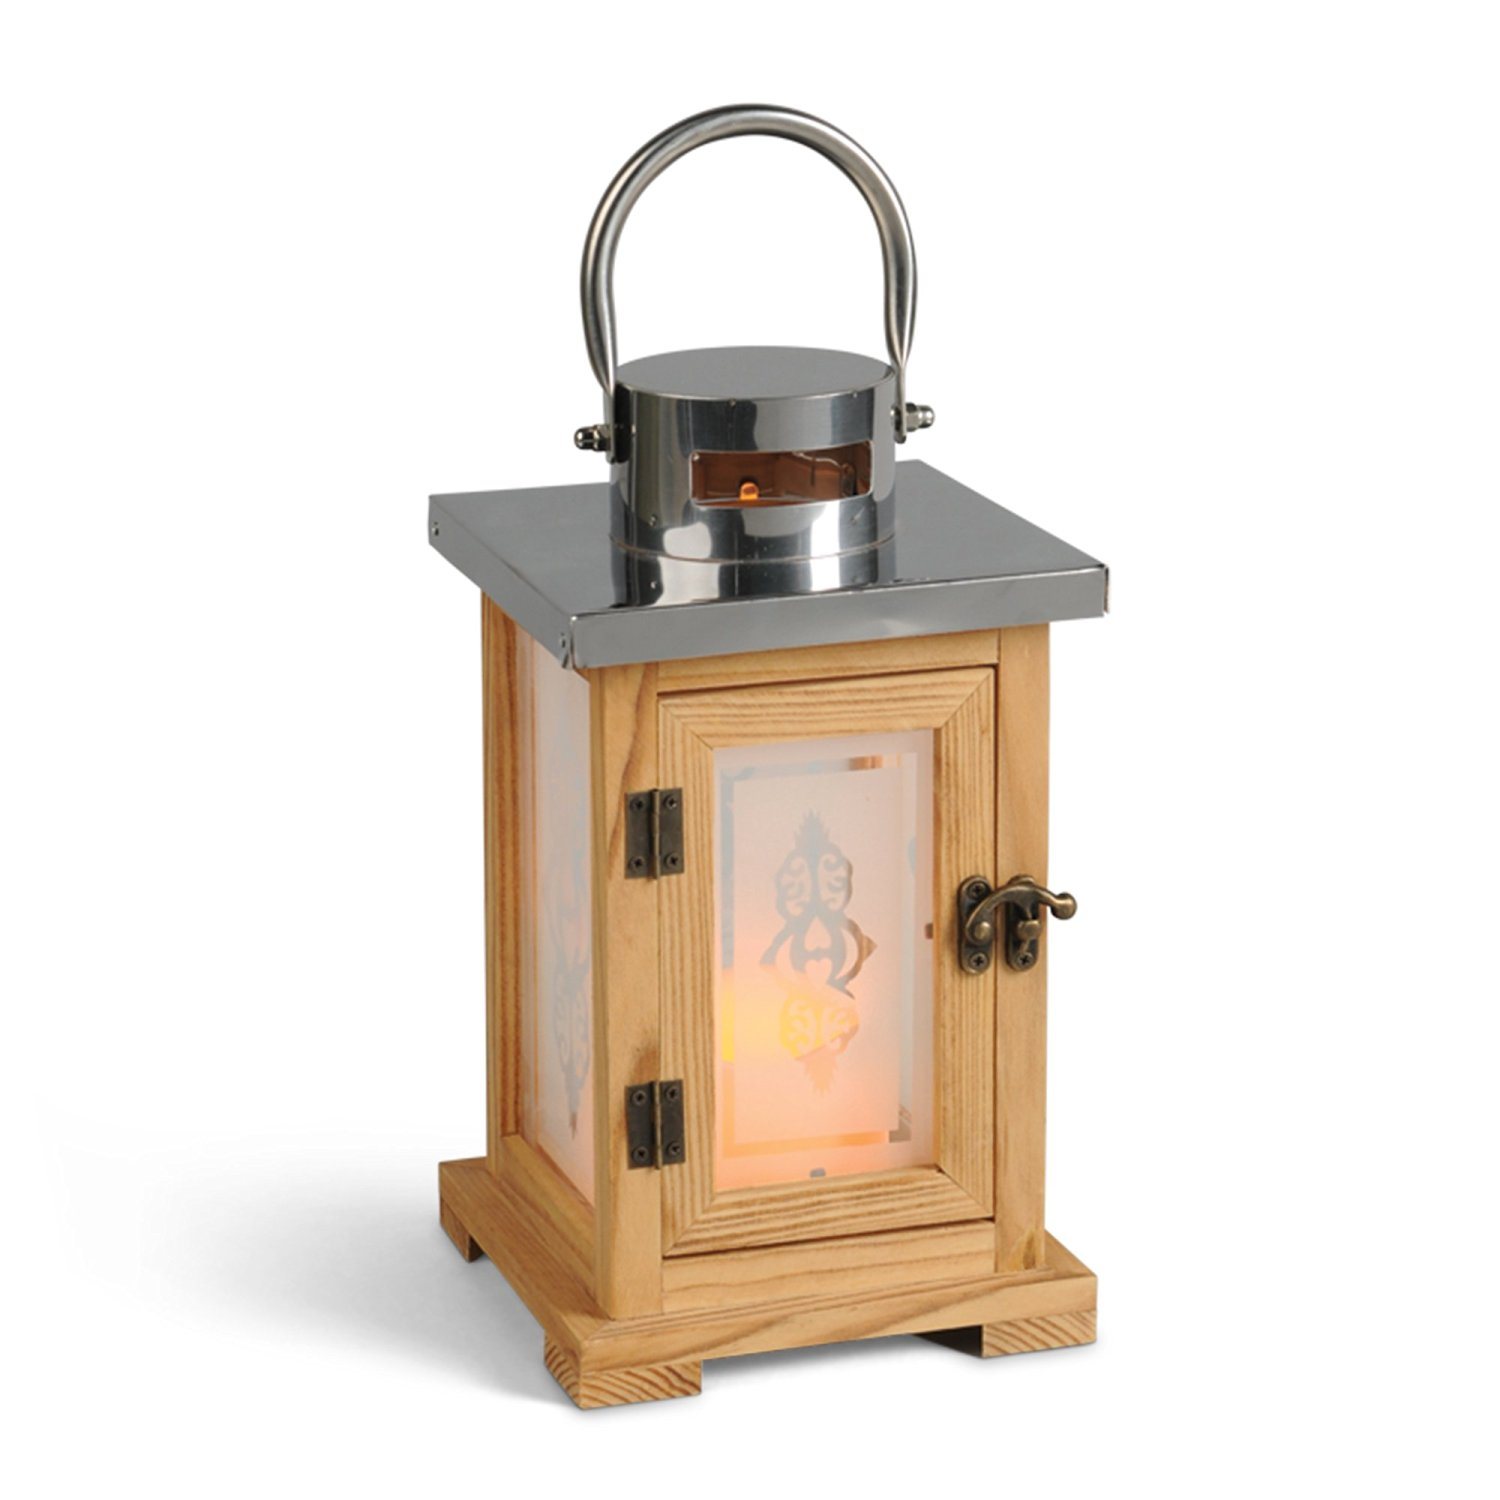 ... Gerson 10 Inch Wood And Stainless Steel Lantern With 3 By 6 Inch Indoor